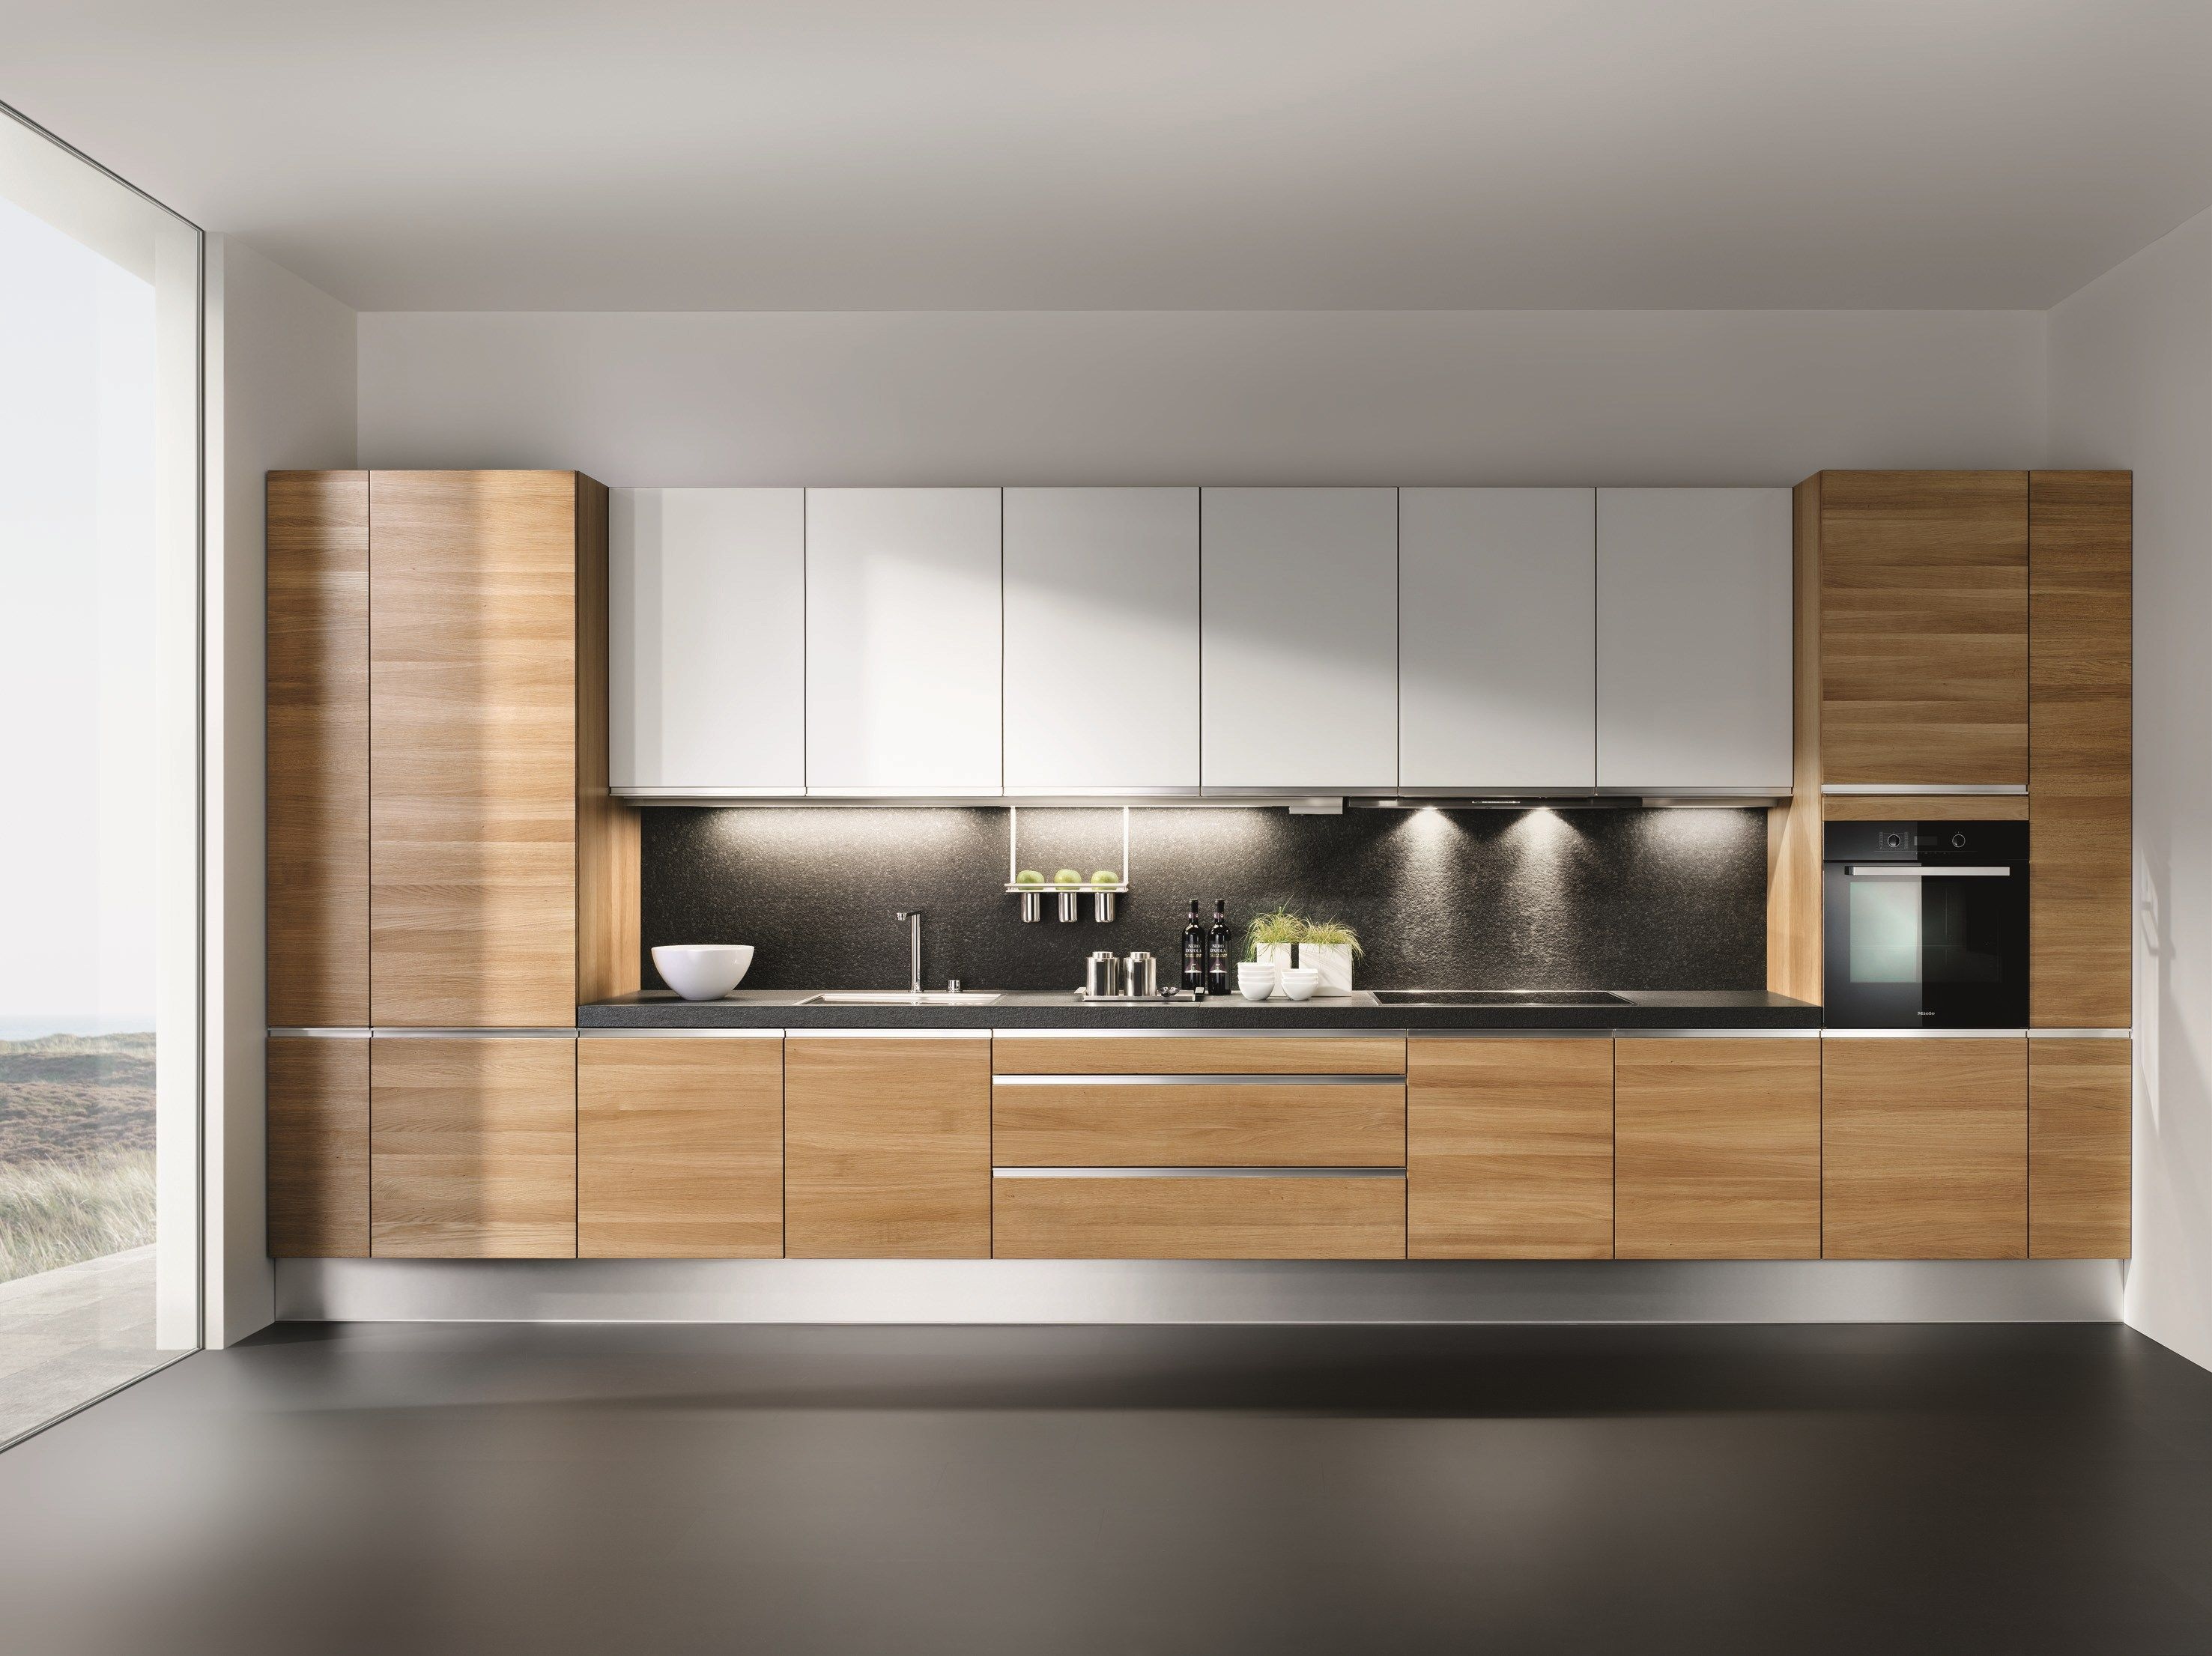 Küchen Design Karl Russ Wooden Fitted Kitchen Linee Linee Collection By Team 7